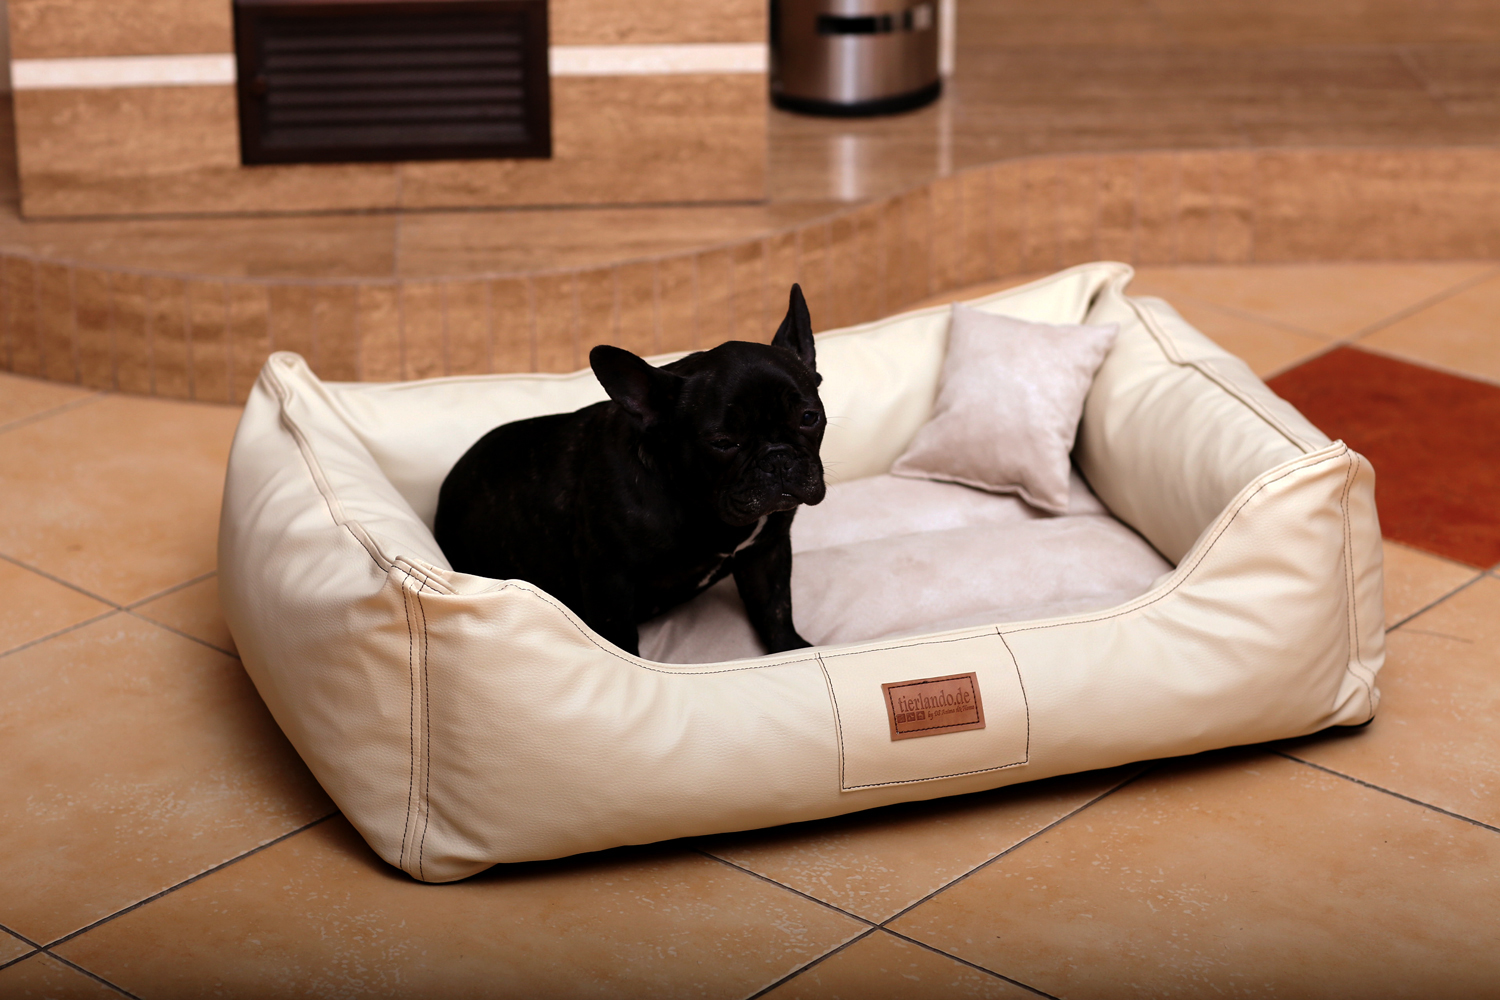 Maddox vip dog bed from tierlando dog sofa velour leather for Sofa 70 cm profundidad